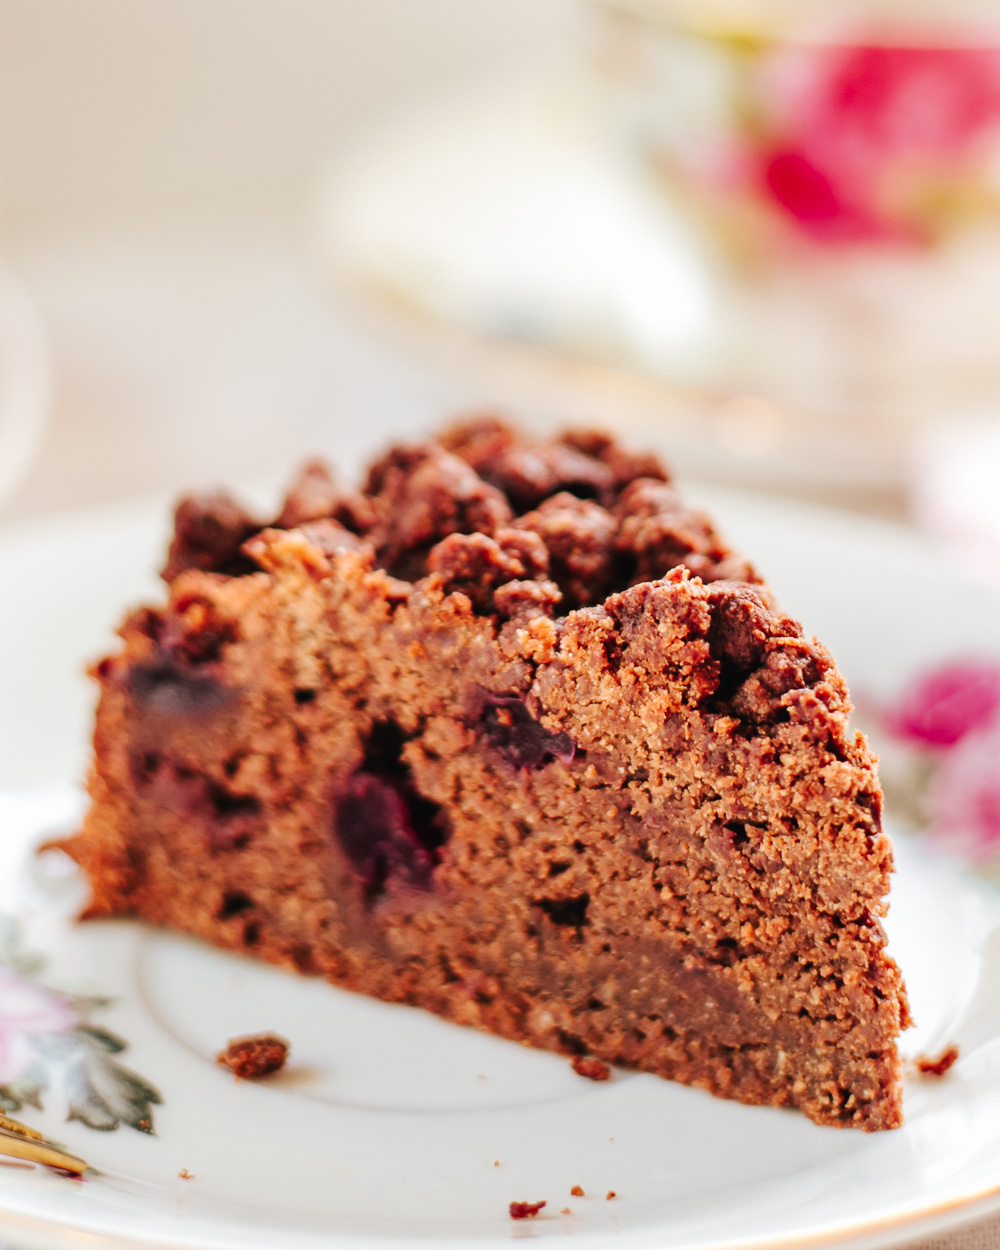 The Healthy Chocolate Cherry Coffee Cake: the recipe is easy to make, wholesome and lower calorie than a traditional coffee cake, but just as yummy and flavorful!